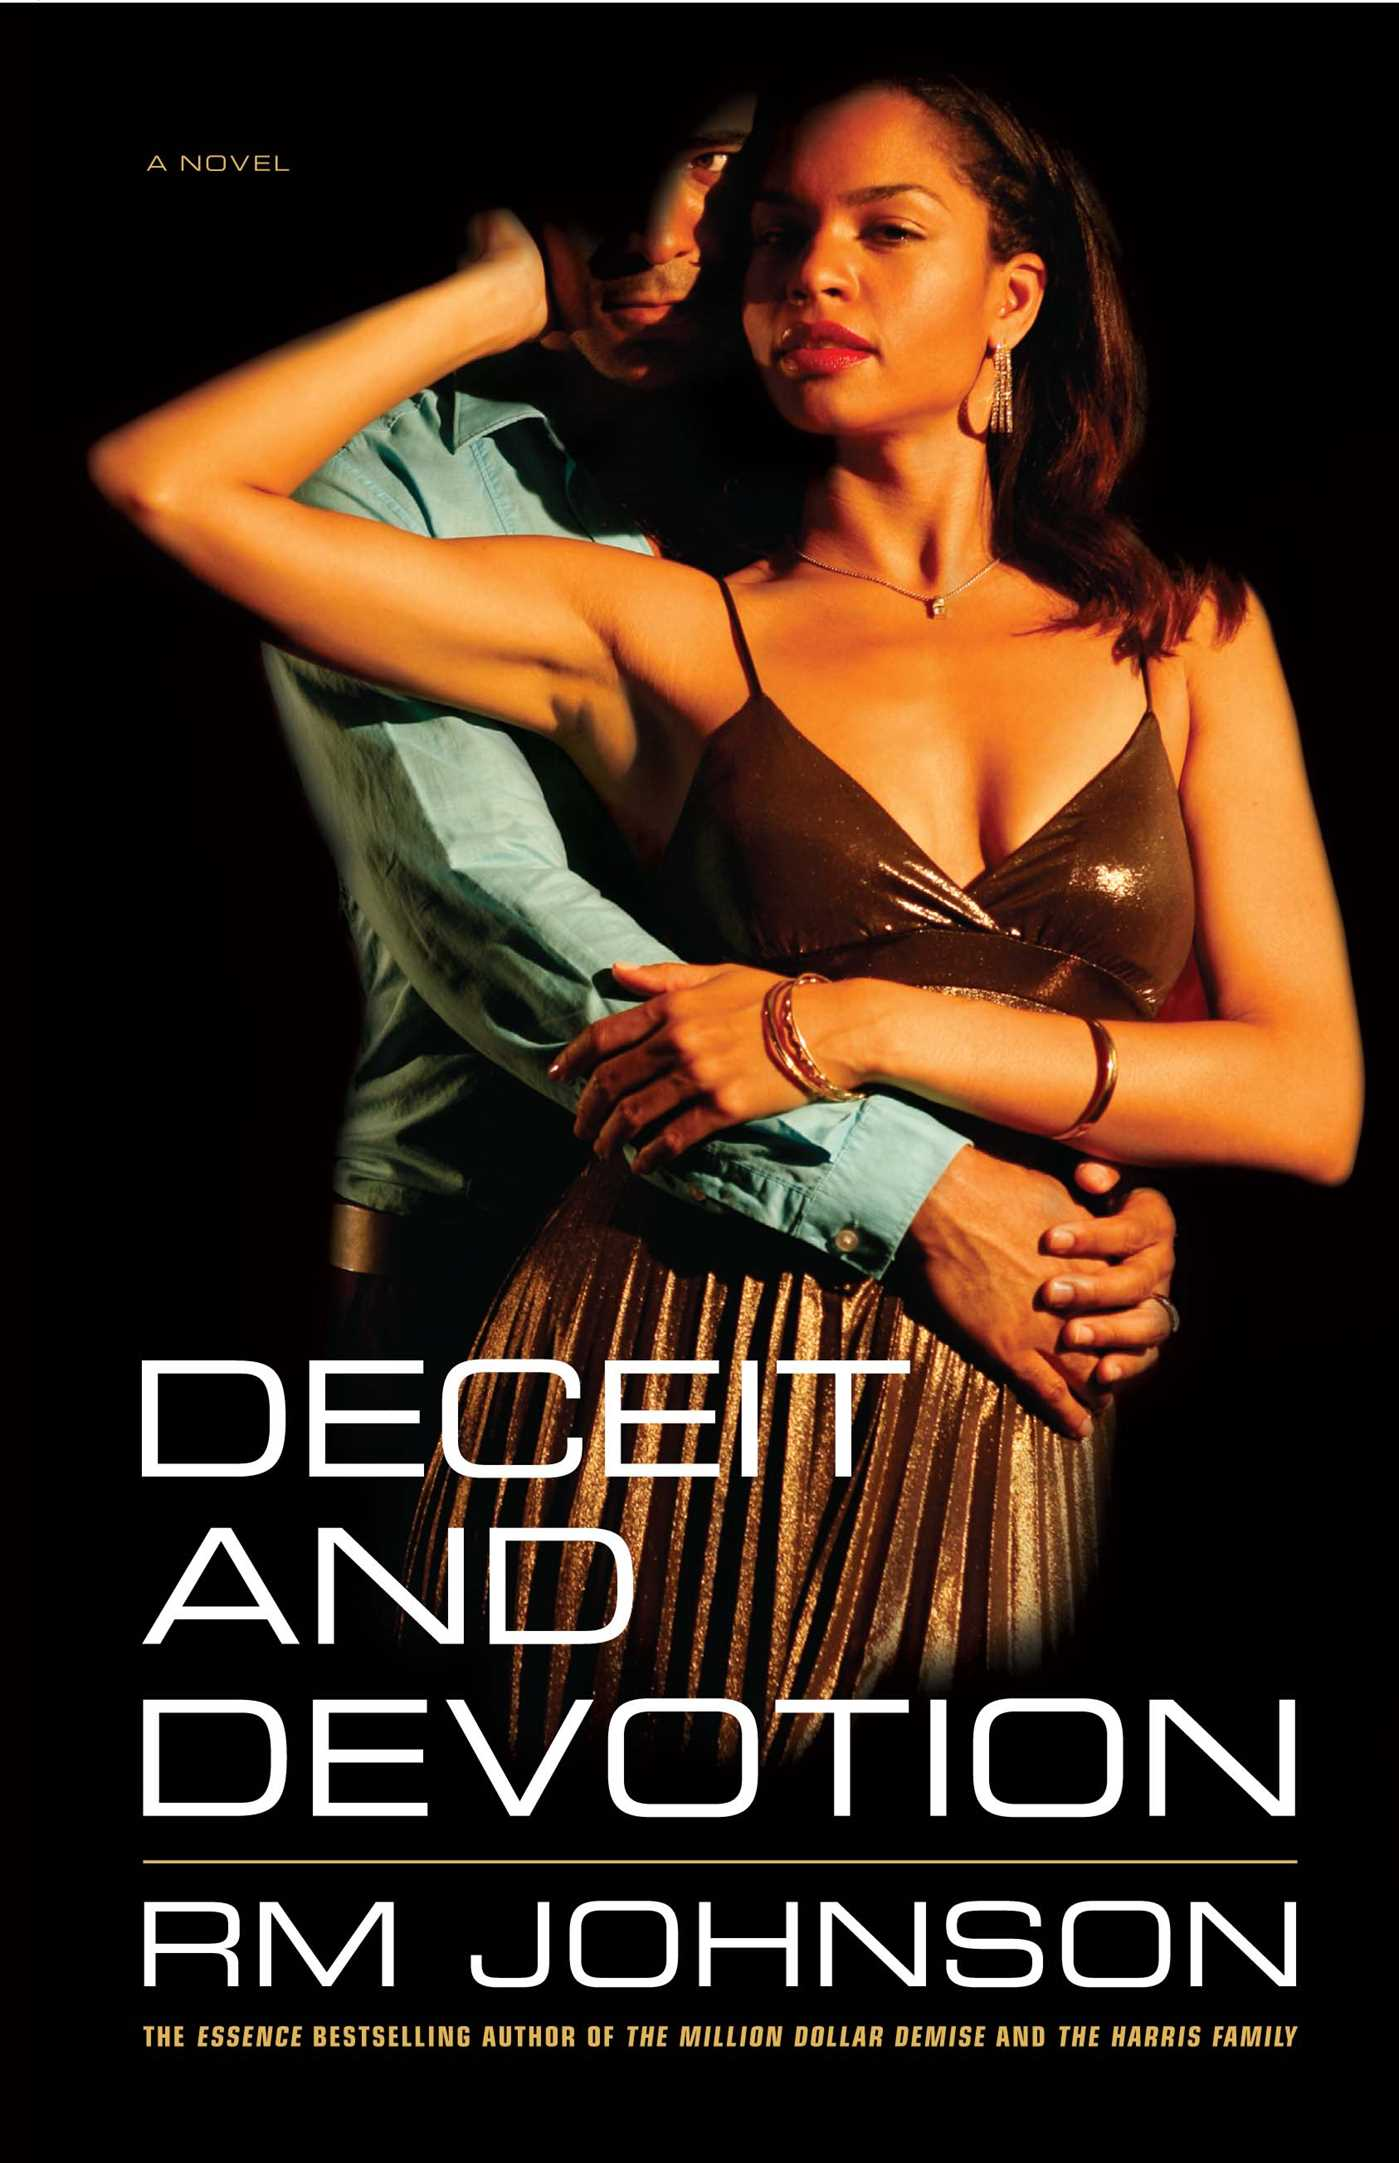 Deceit-and-devotion-9781439180594_hr